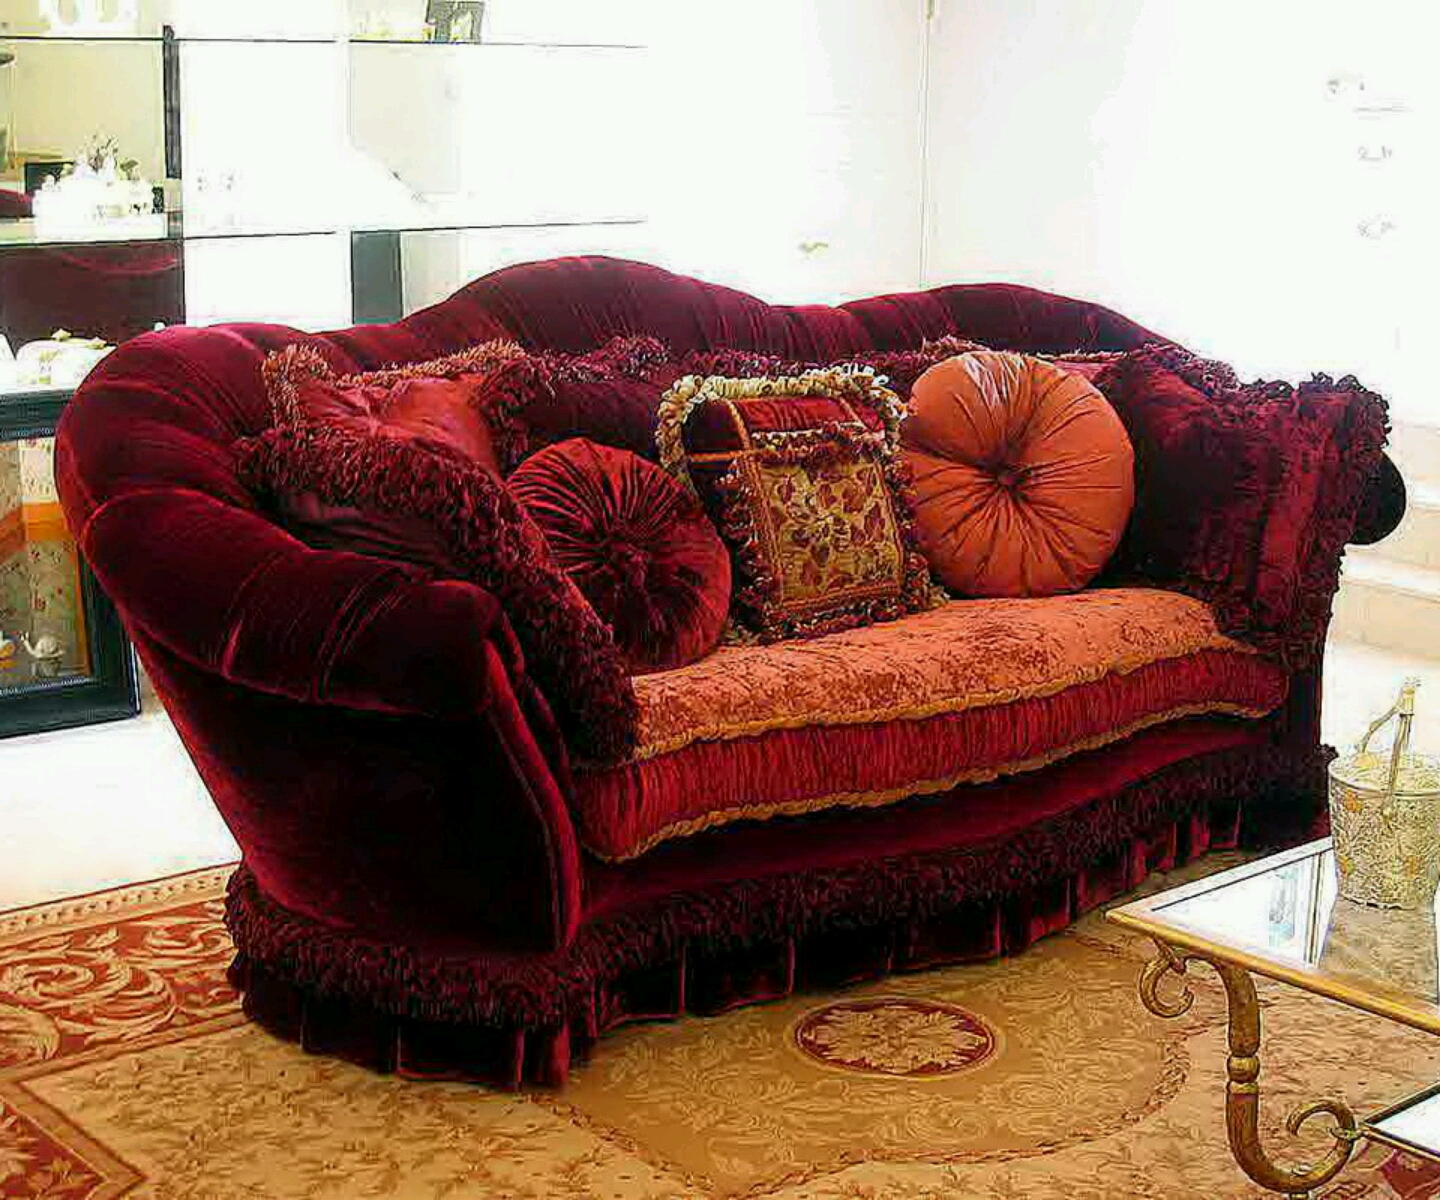 Modern sofa designs with beautiful cushion styles. ~ Furniture Gallery